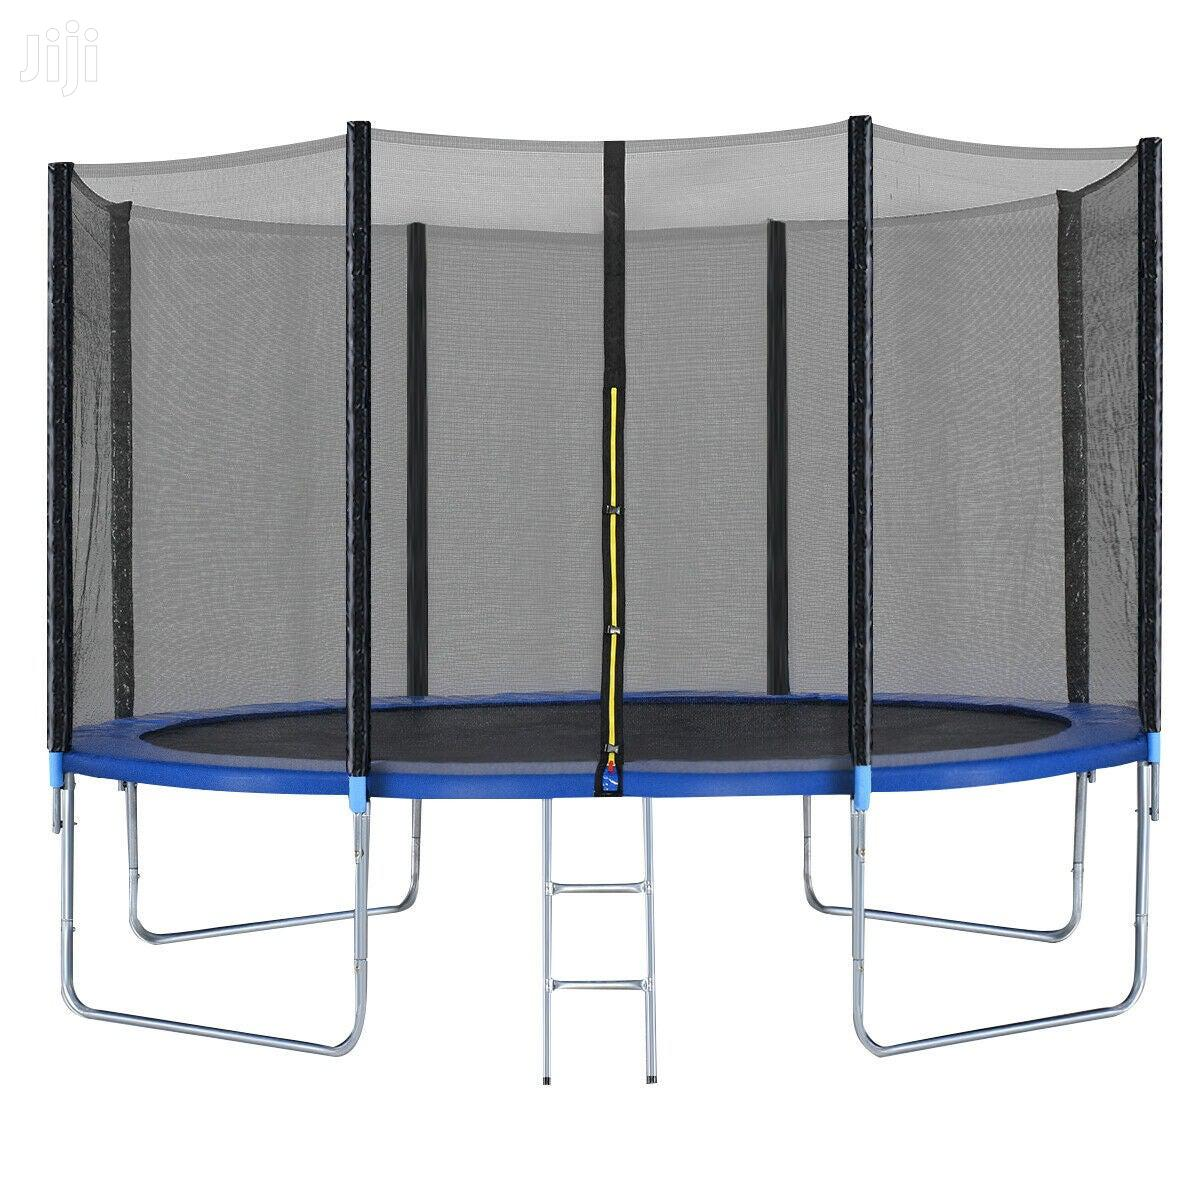 12ft 16ft Trampolines Brand New With Ladder Safety Net